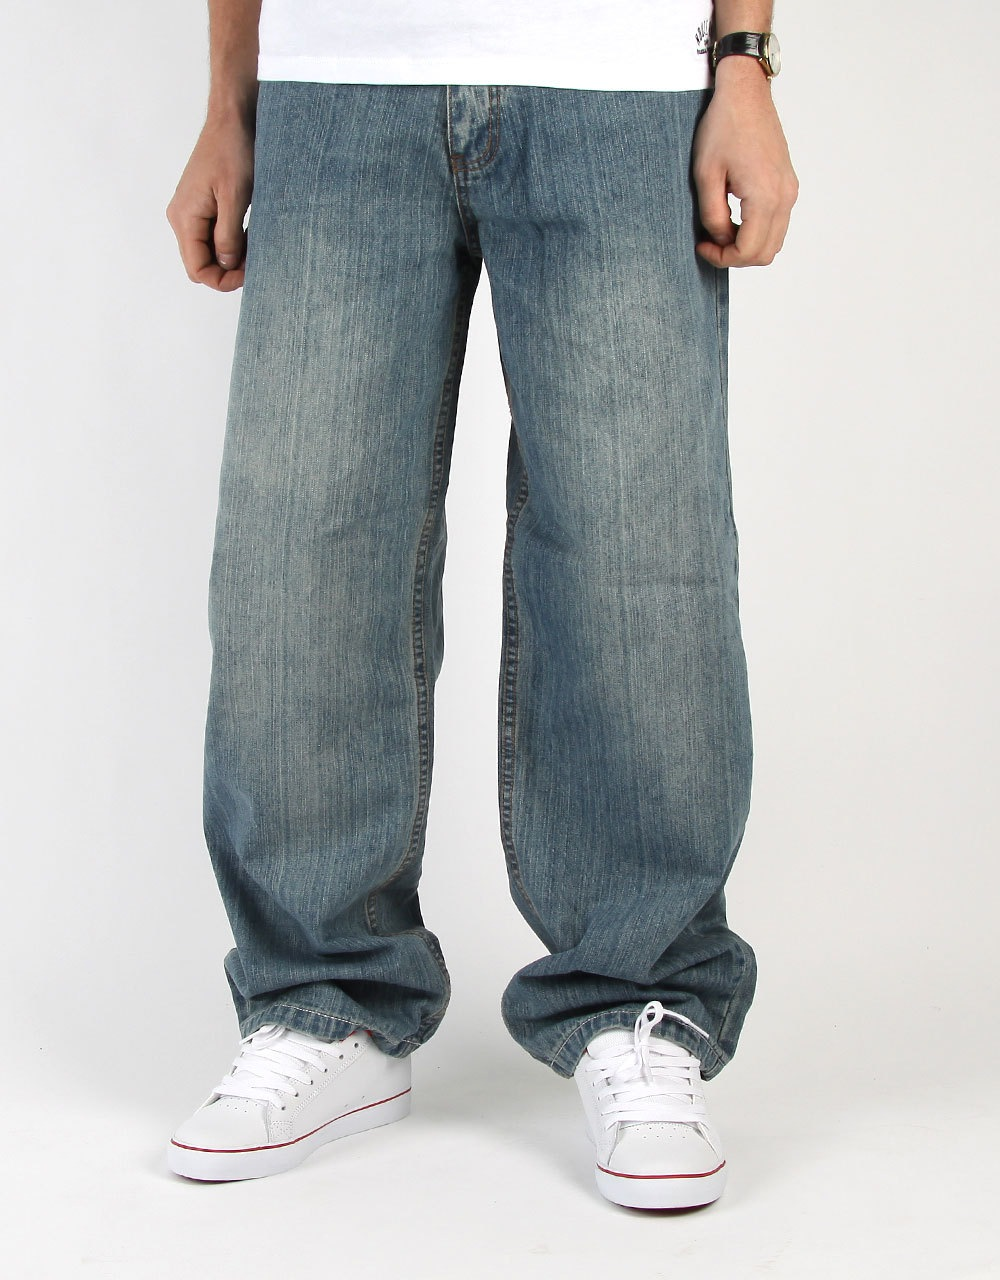 Route One Baggy Denim Jeans - Light Wash | Skate Jeans | Mens Skateboard Denim | Clothing ...